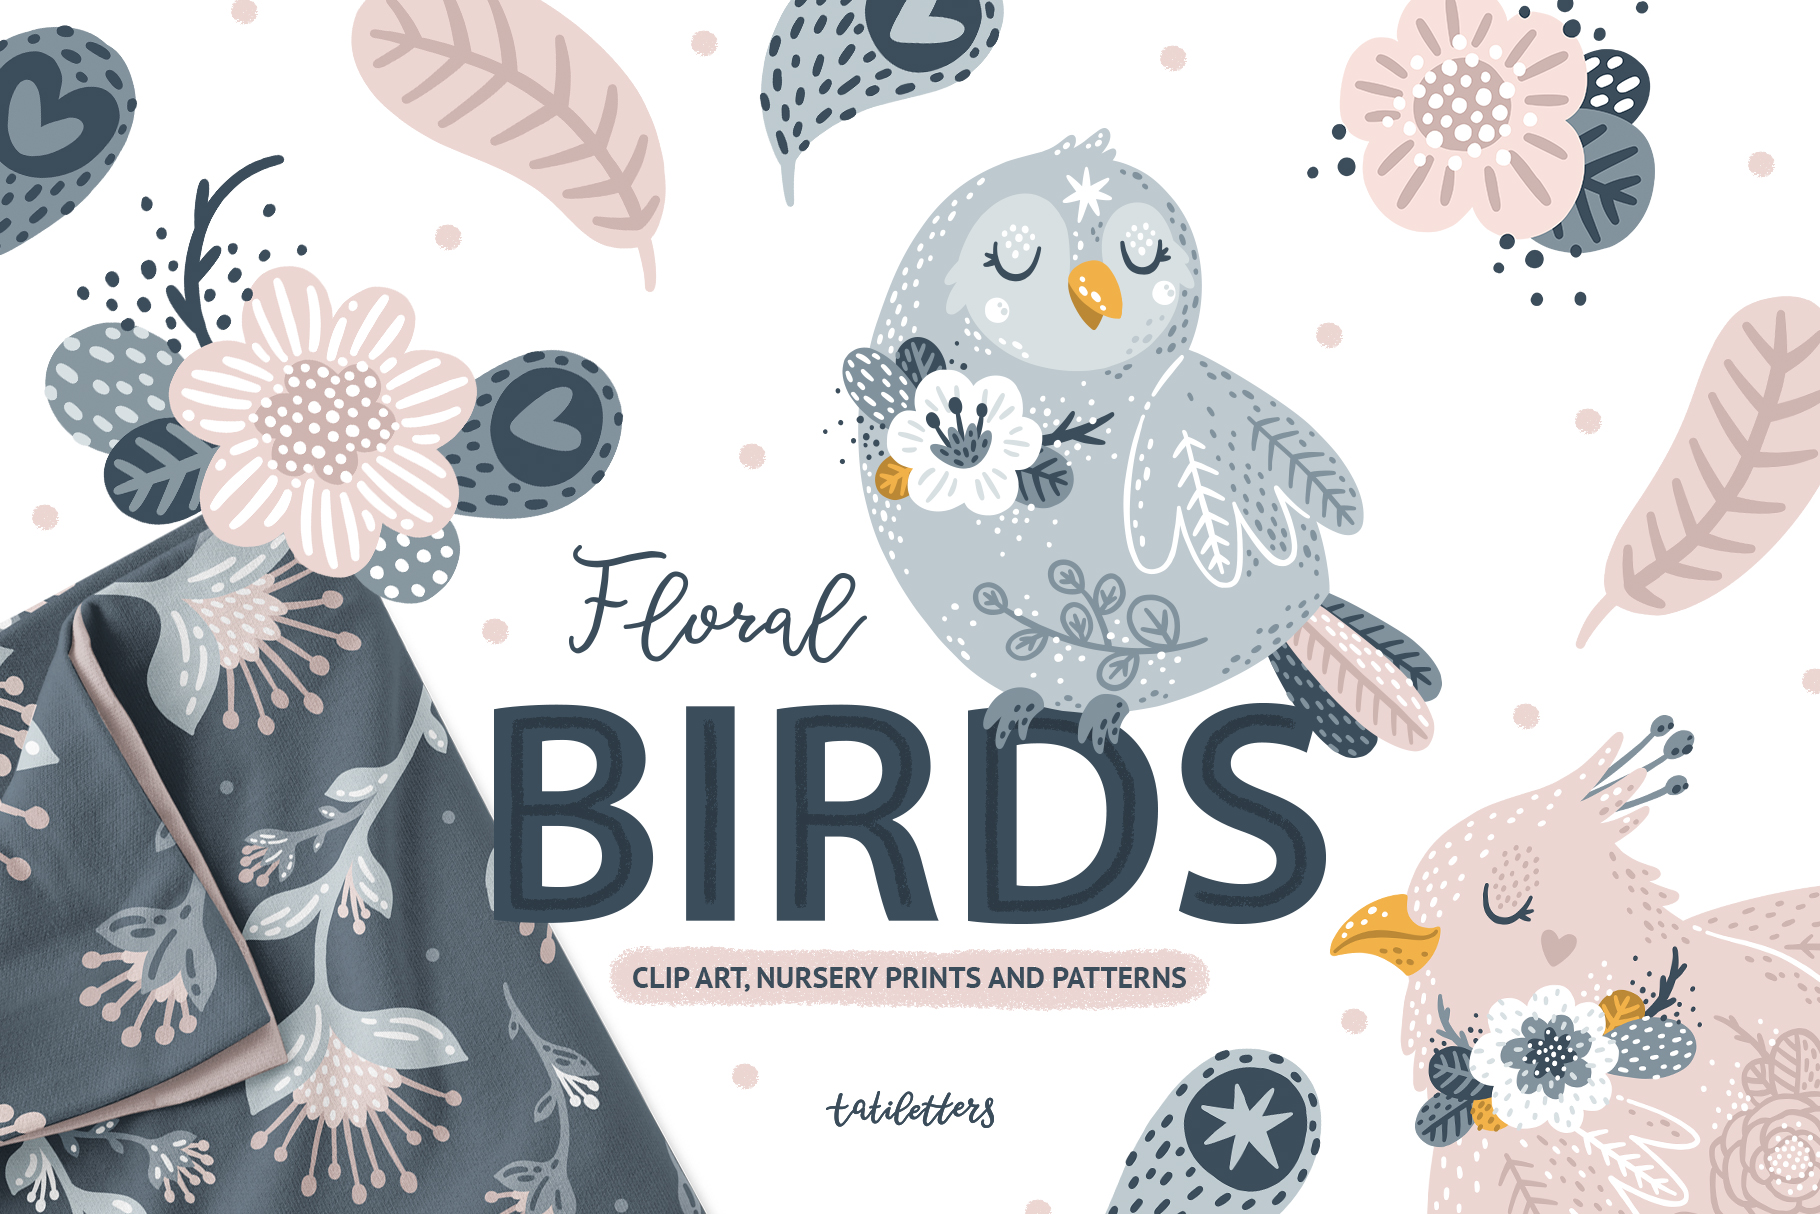 Birds and Flowers Prints & Patterns